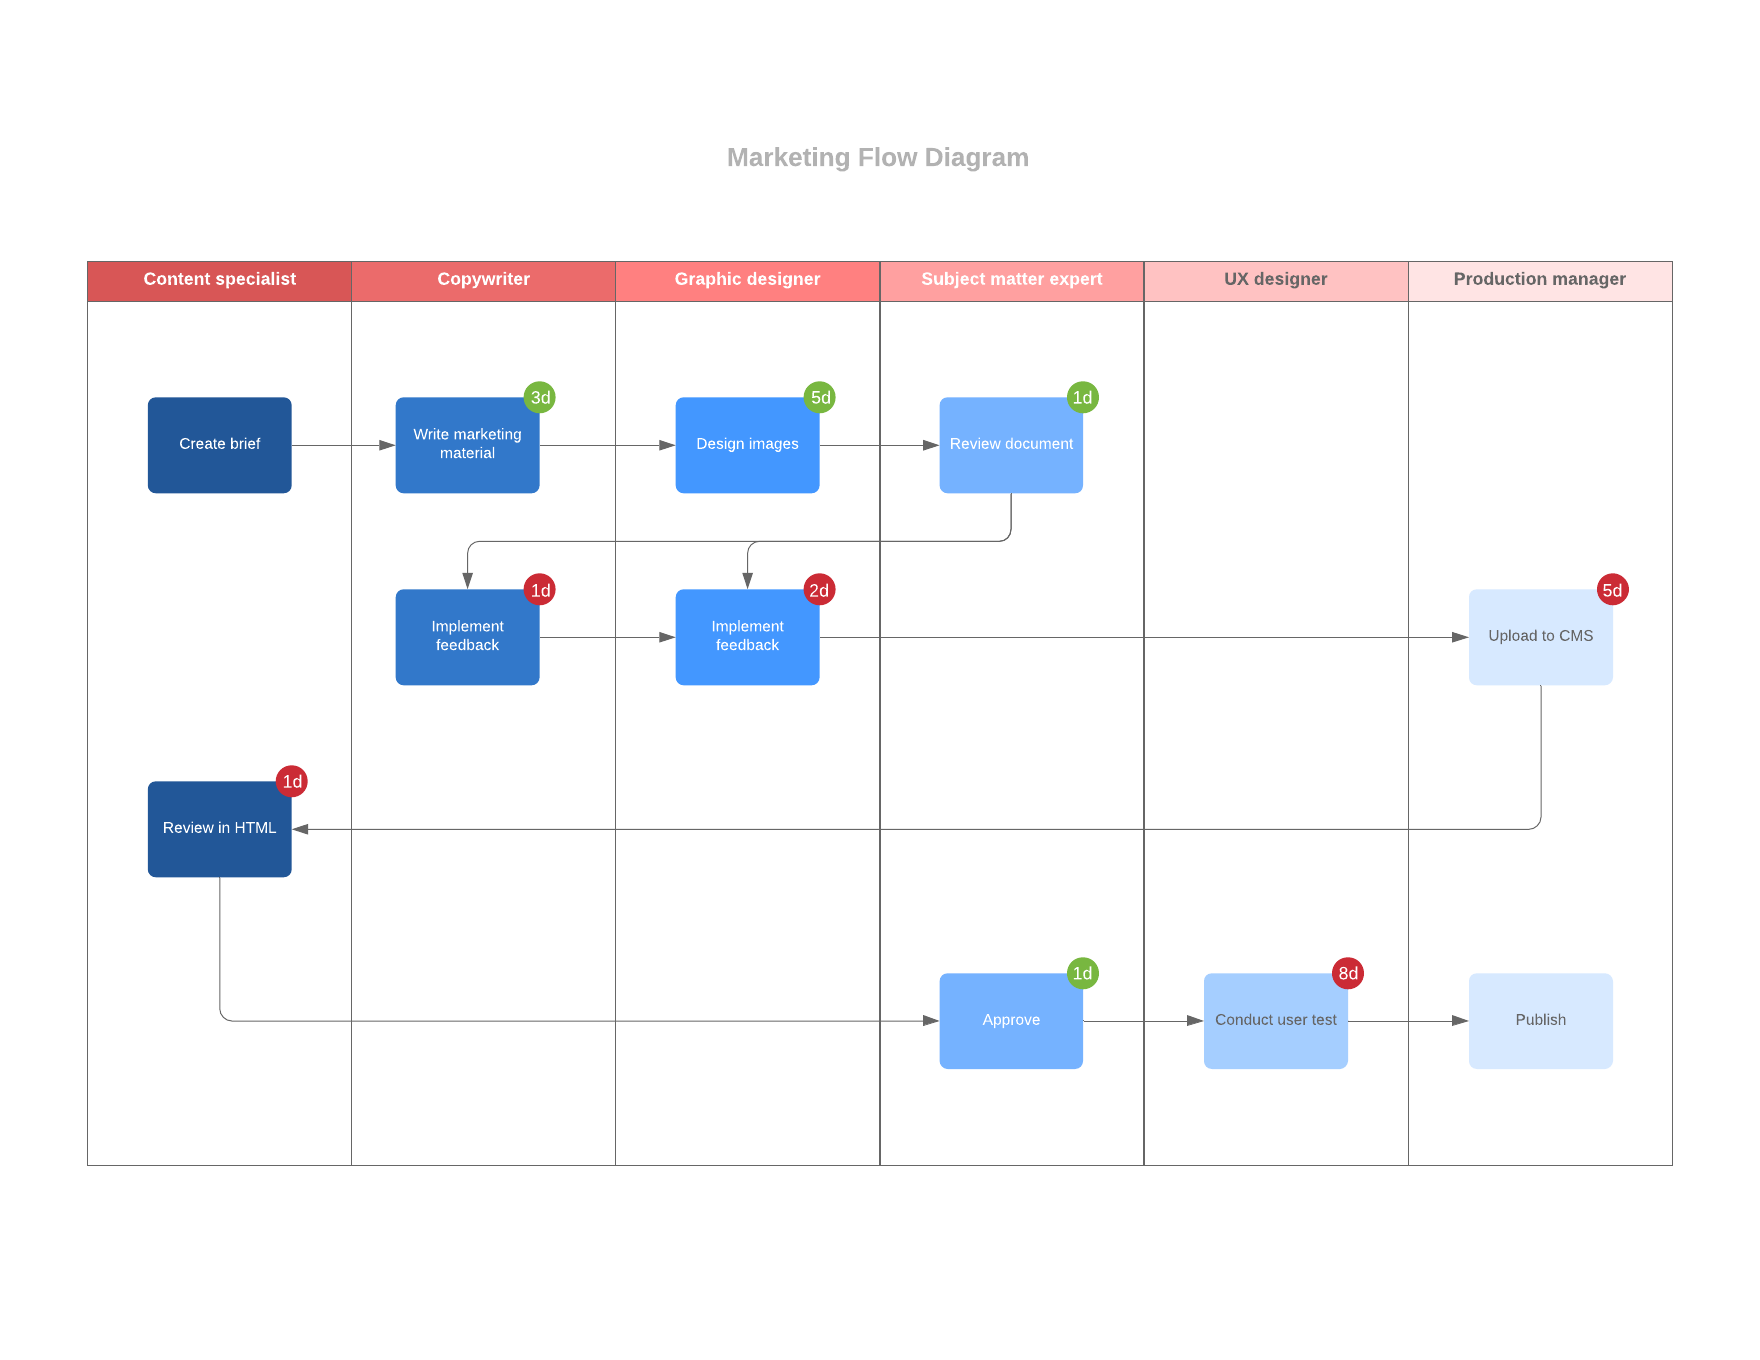 Mapping workflows